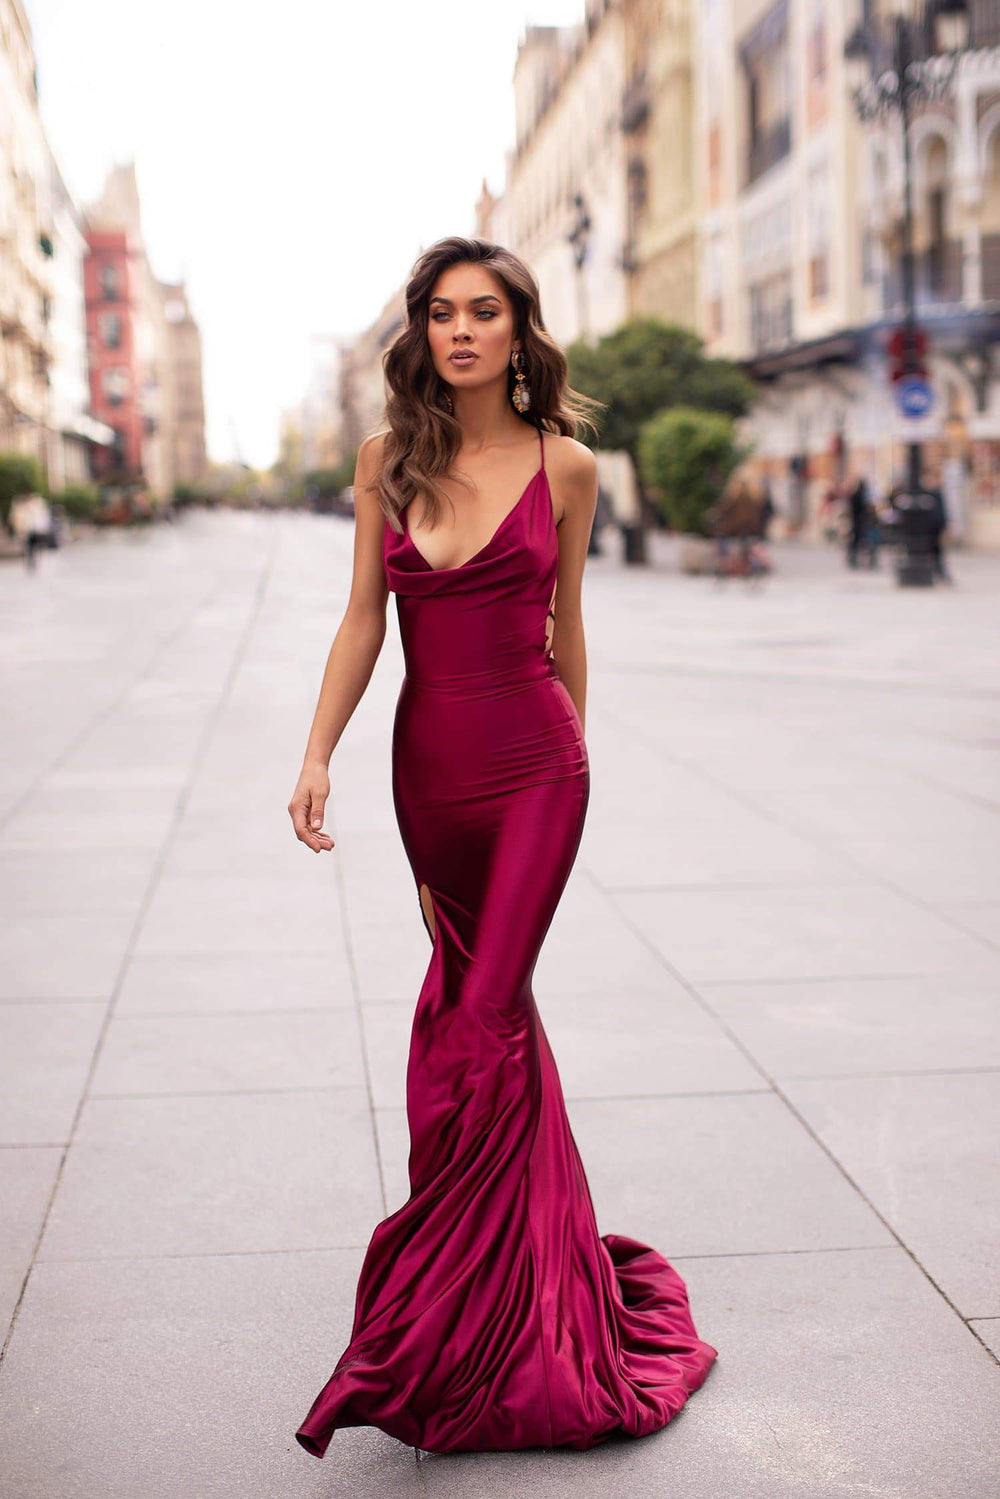 Desirae - Plum Cowl Neck Satin Gown with Side Slit & Lace-Up Back